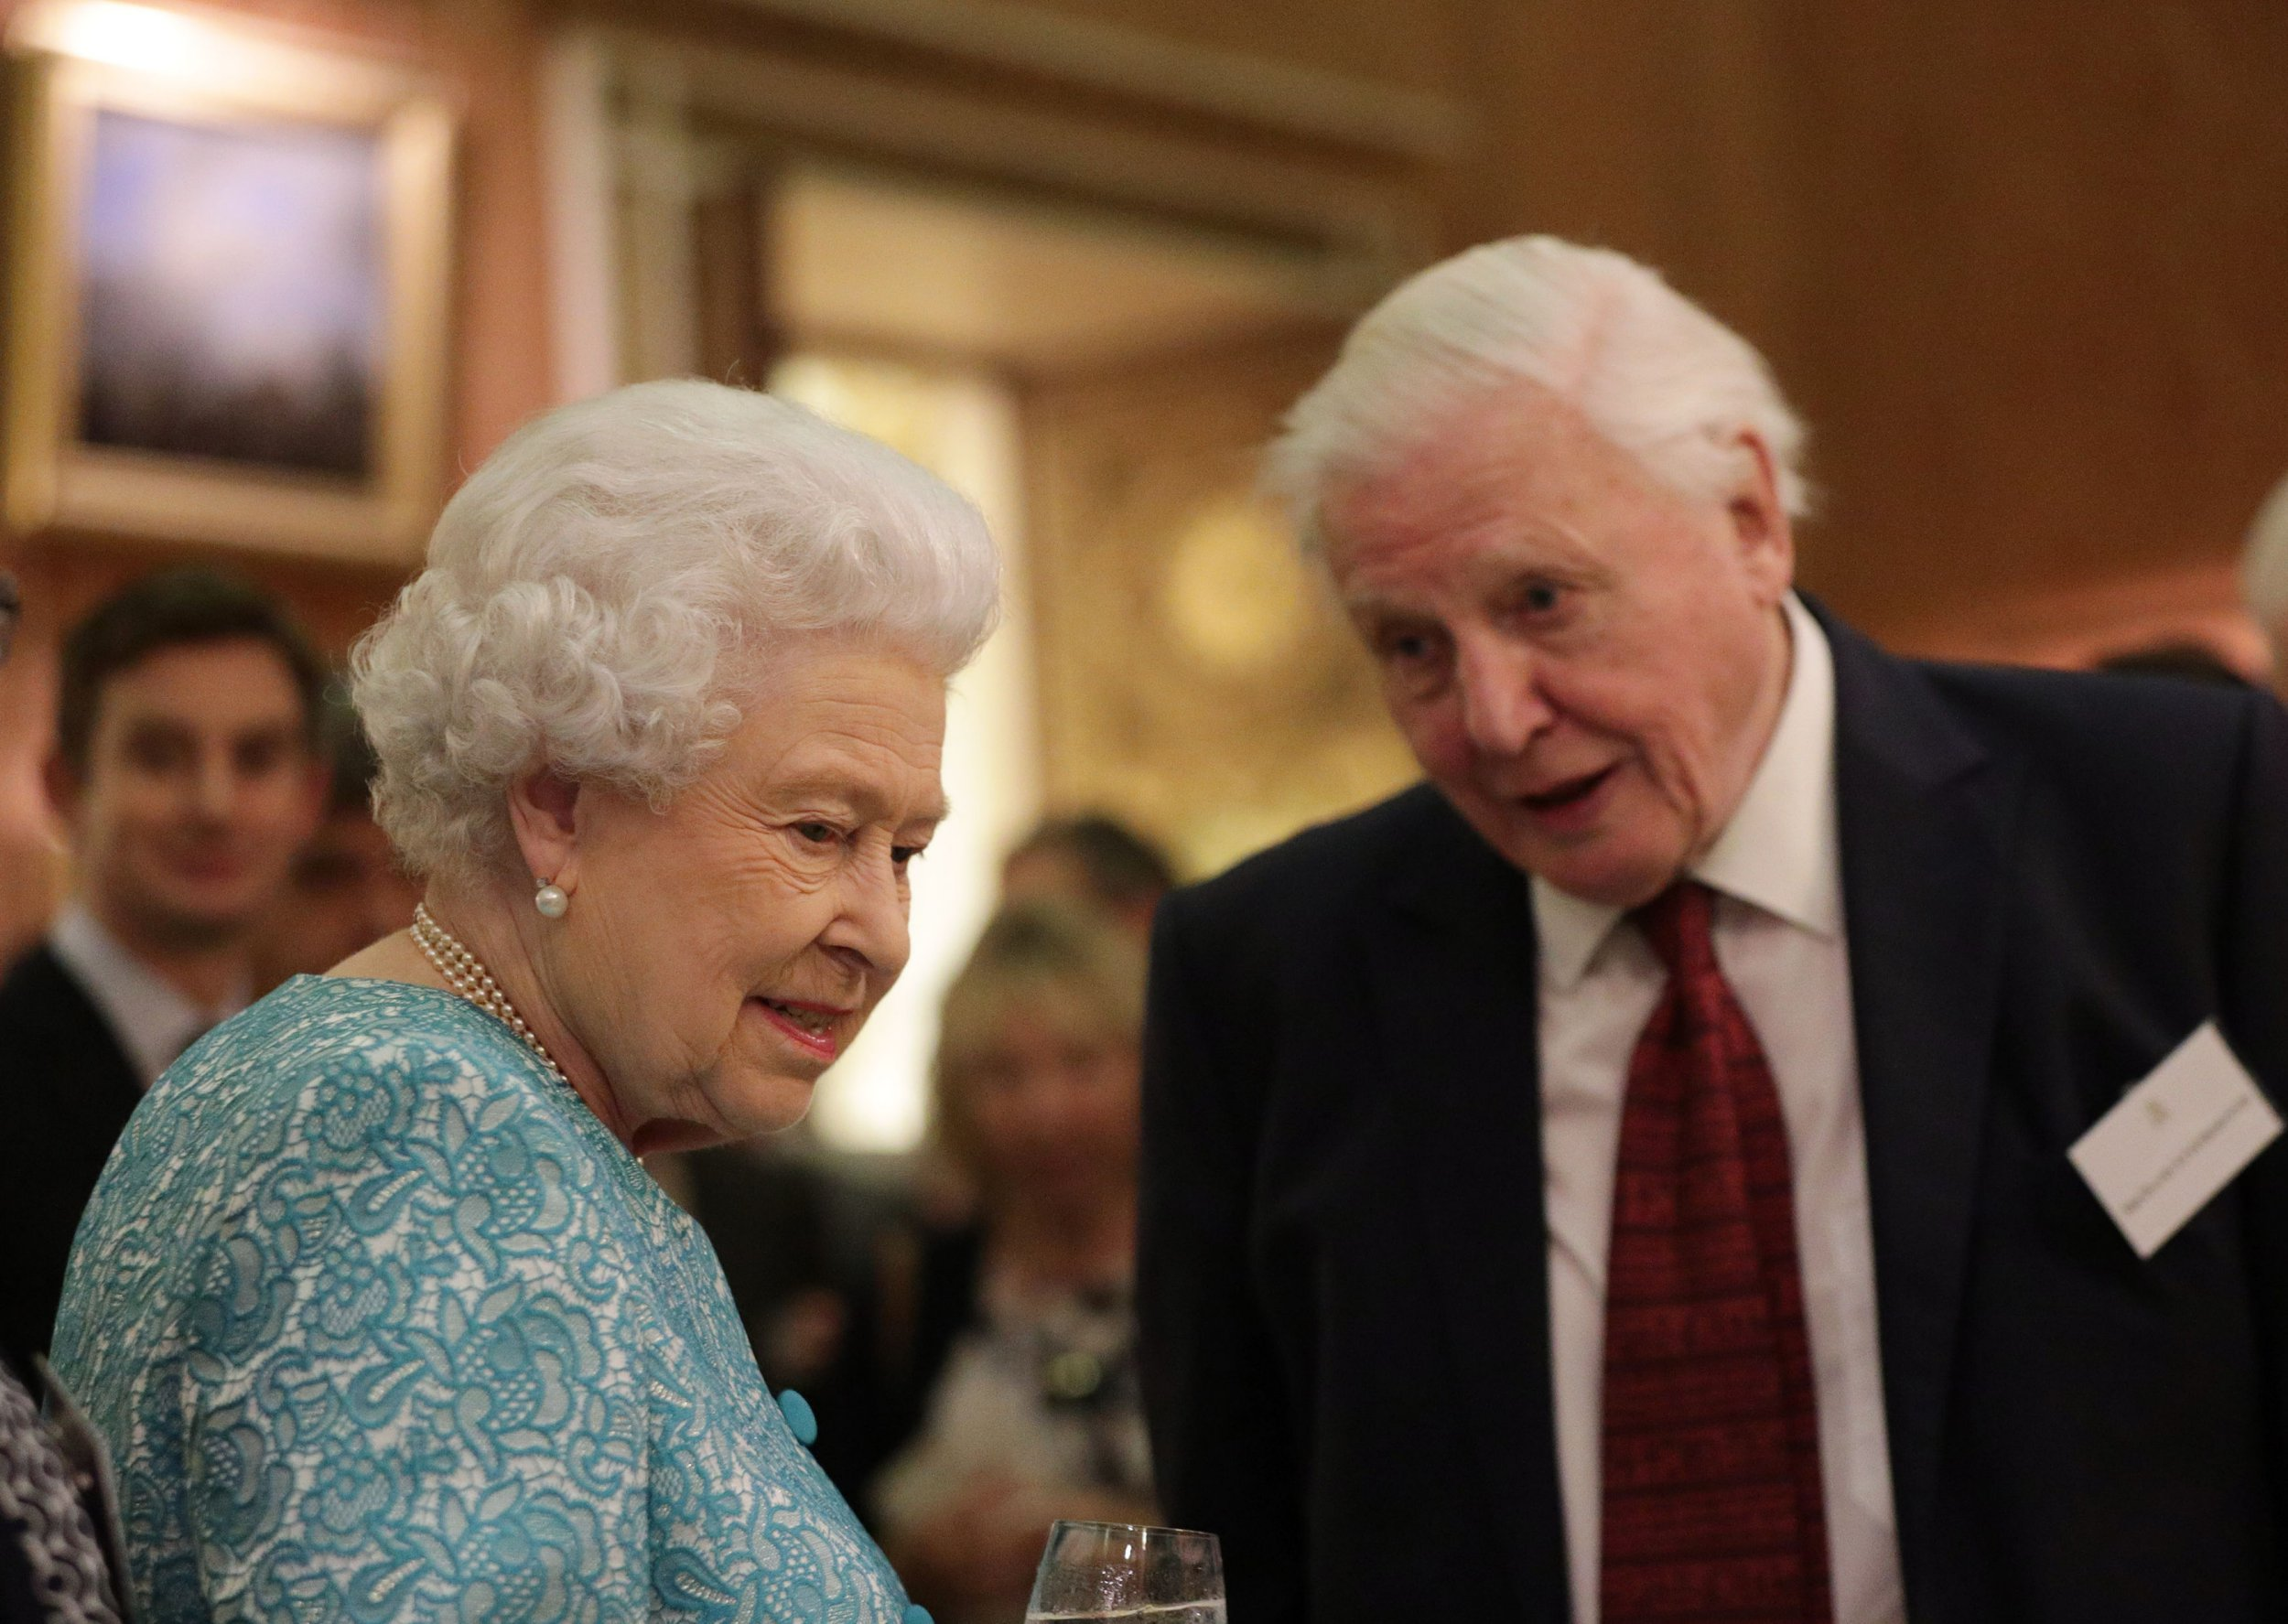 David Attenborough doesn't want to talk about the Queen – butterflies are more interesting